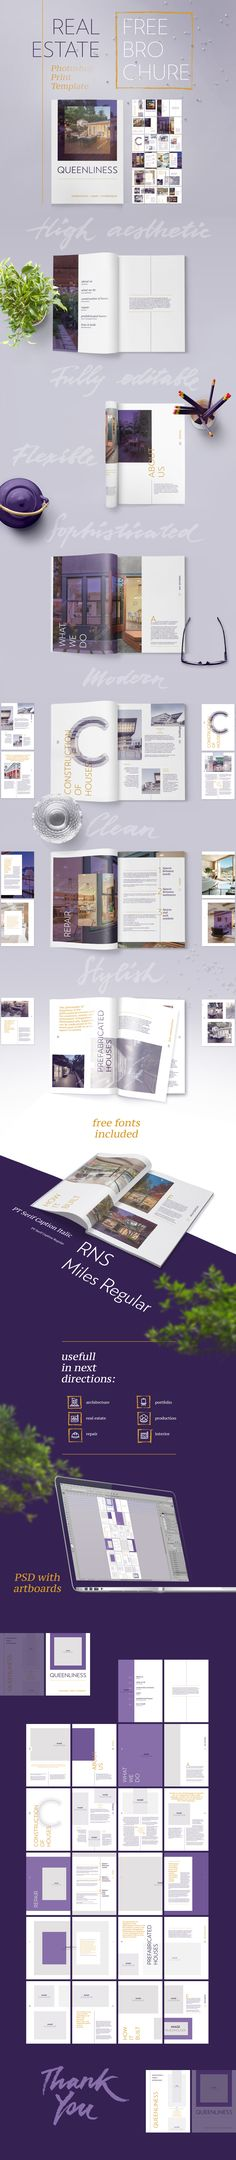 Free Real Estate Brochure Template — Queenliness on Behance